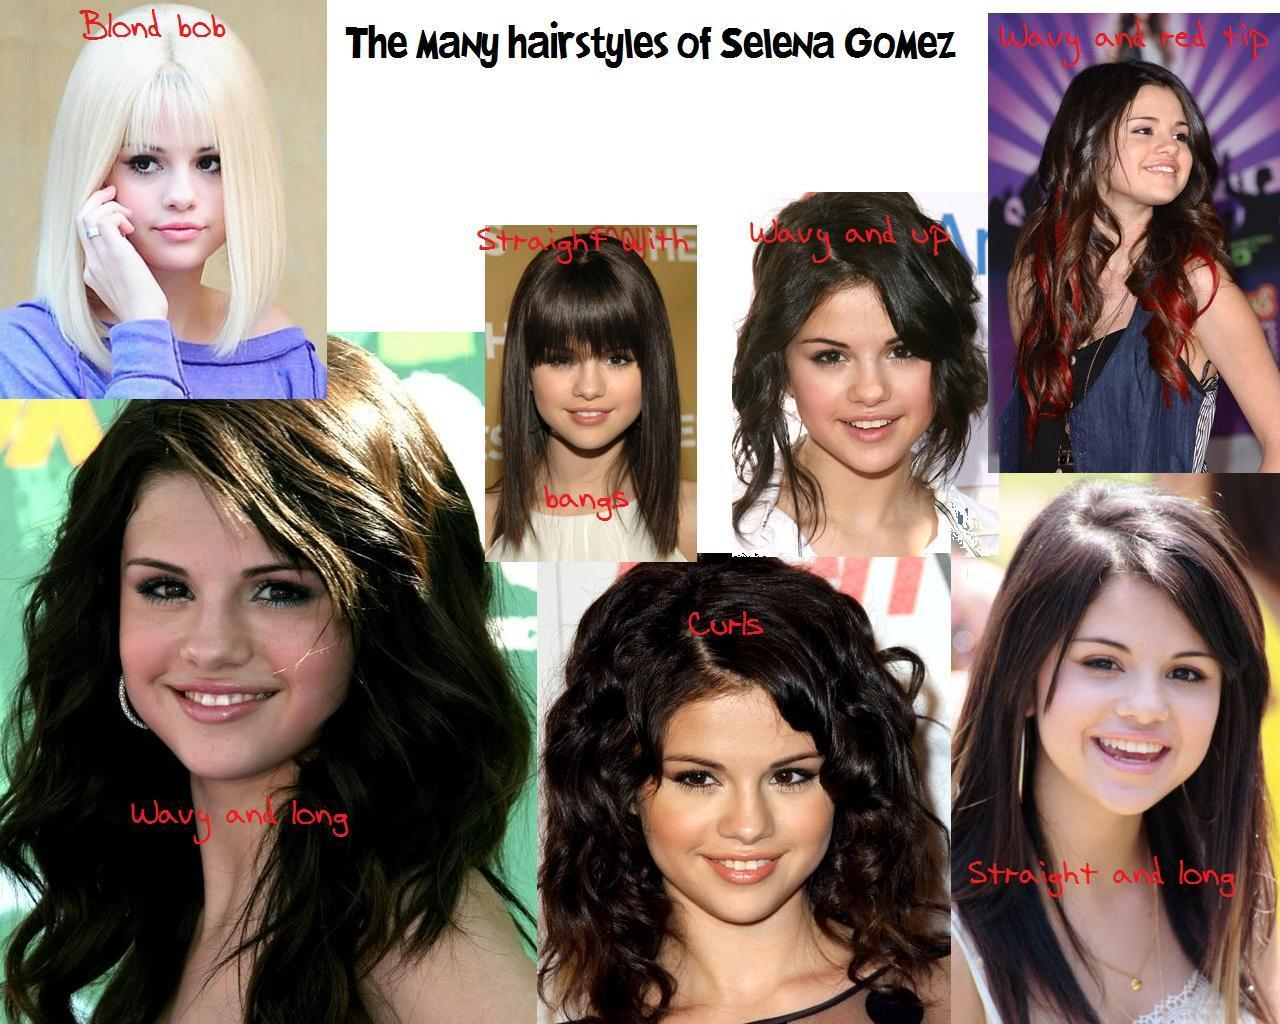 http://images2.fanpop.com/images/photos/7900000/The-many-hairstyles-of-Selena-Gomez-selena-gomez-7908738-1280-1024.jpg